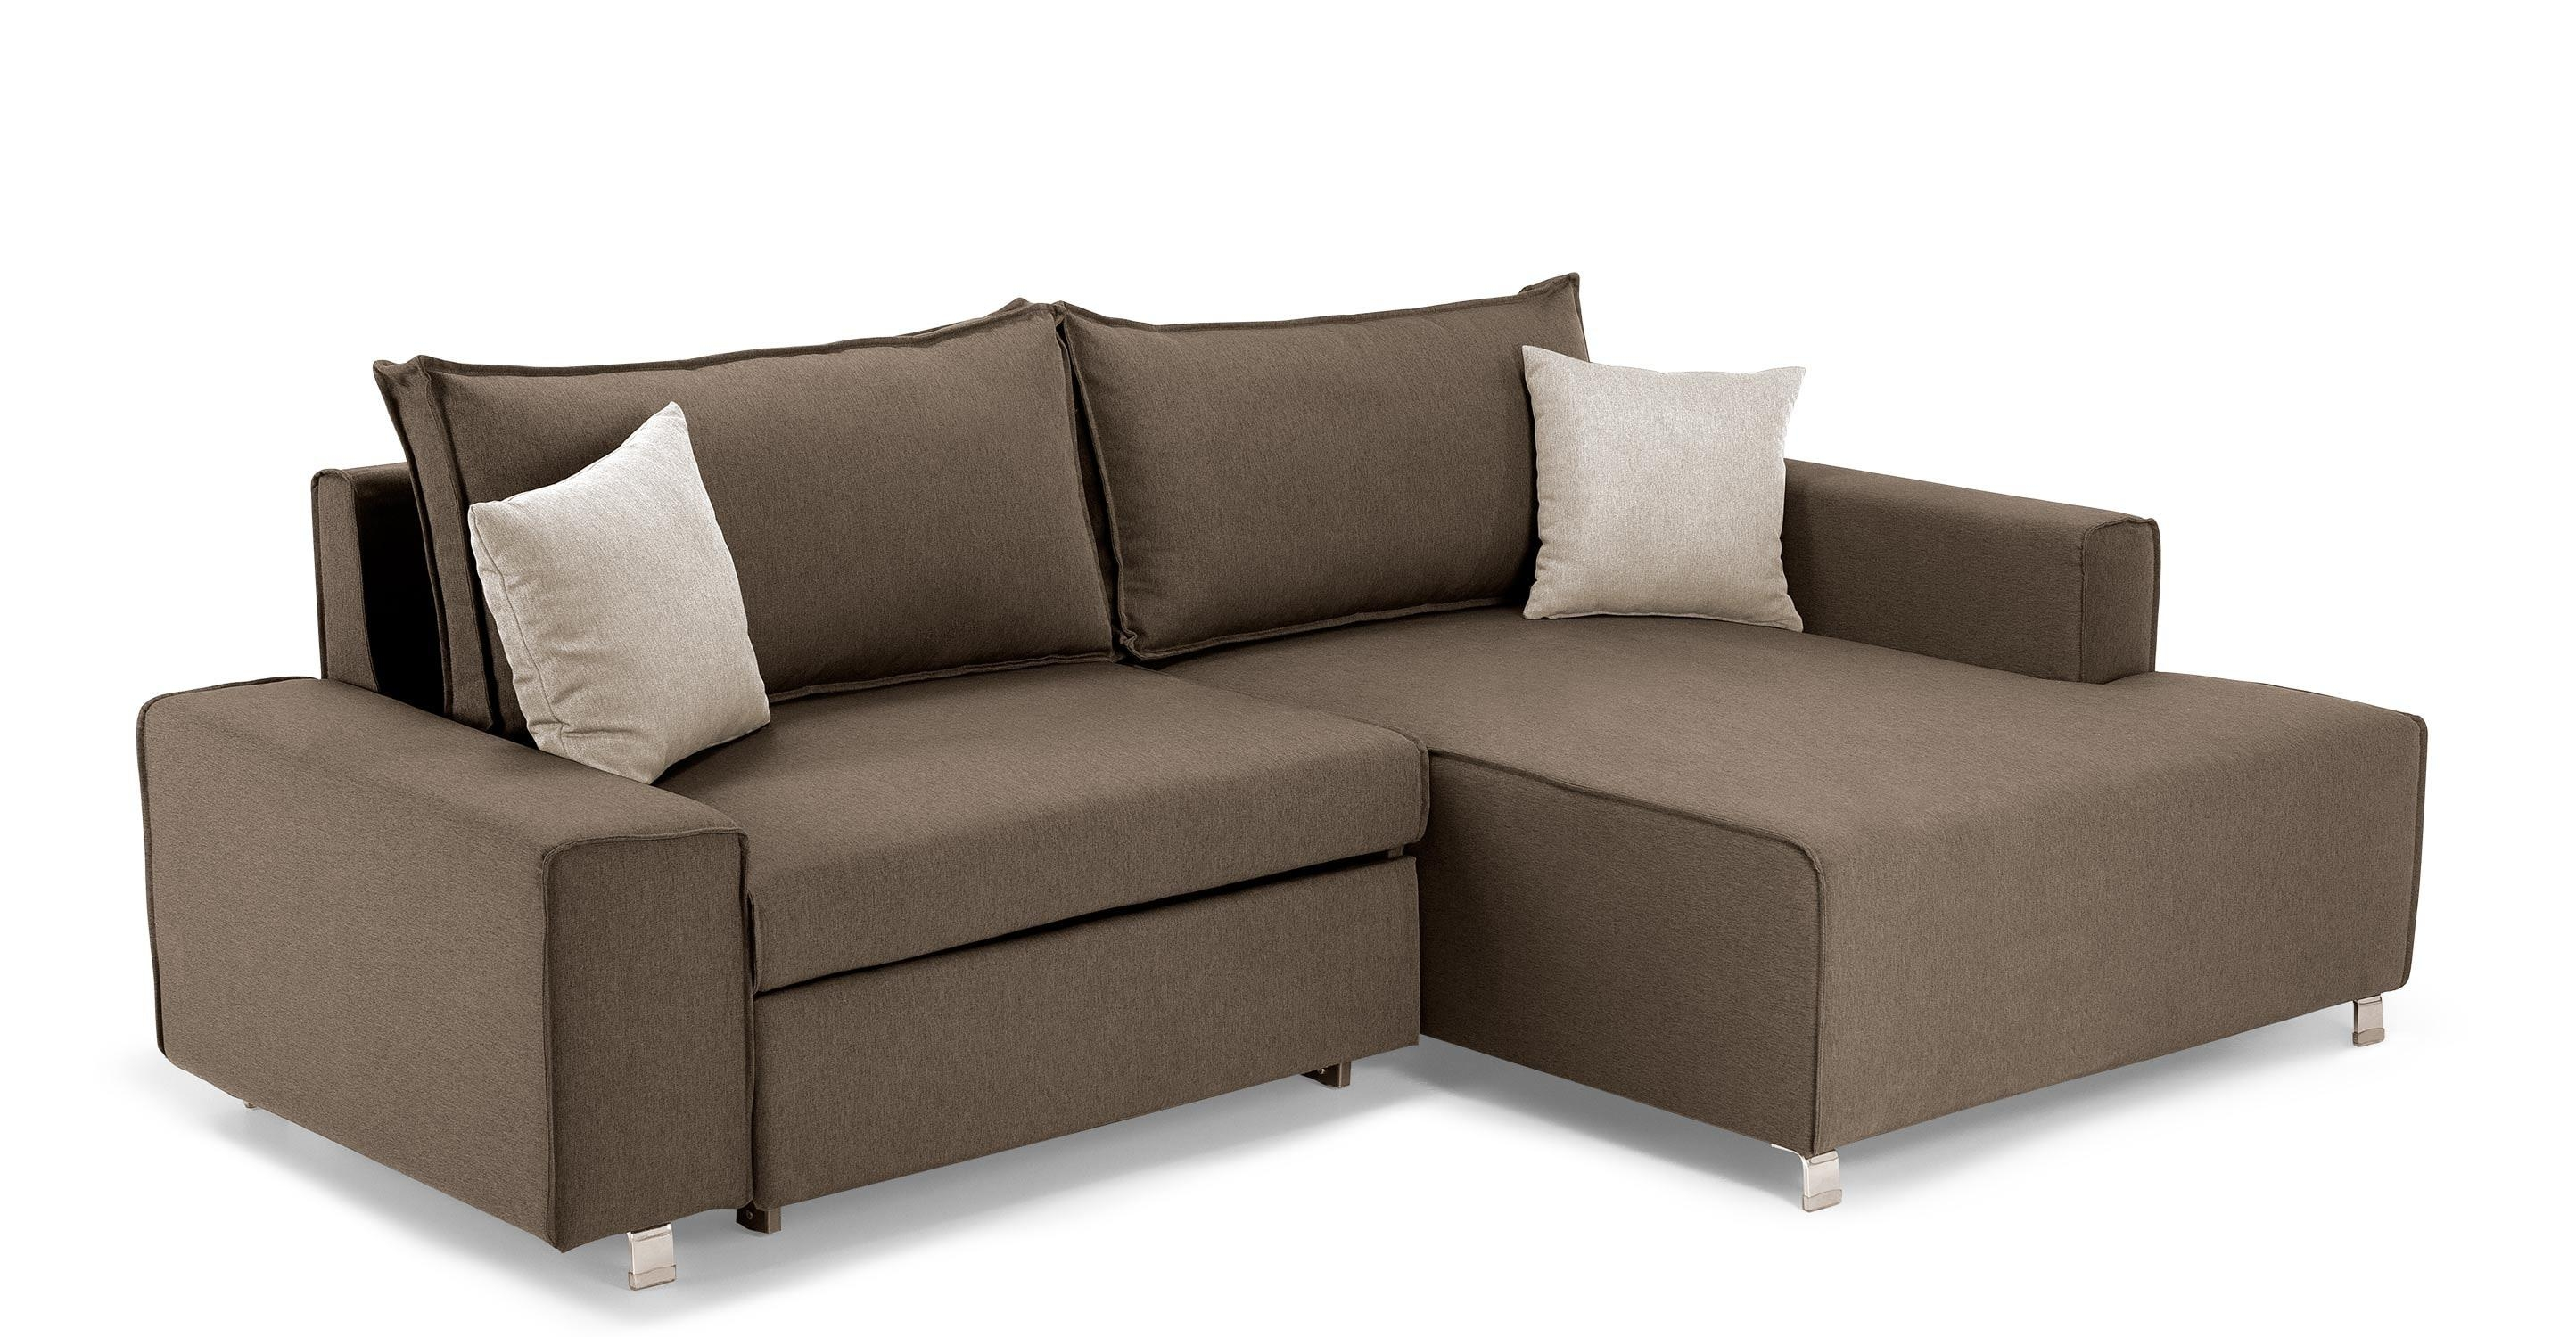 Sofas Center : Corner Sofa Beds Uk Cheap Birminghamcorner For Throughout Cheap Corner Sofa (View 6 of 20)